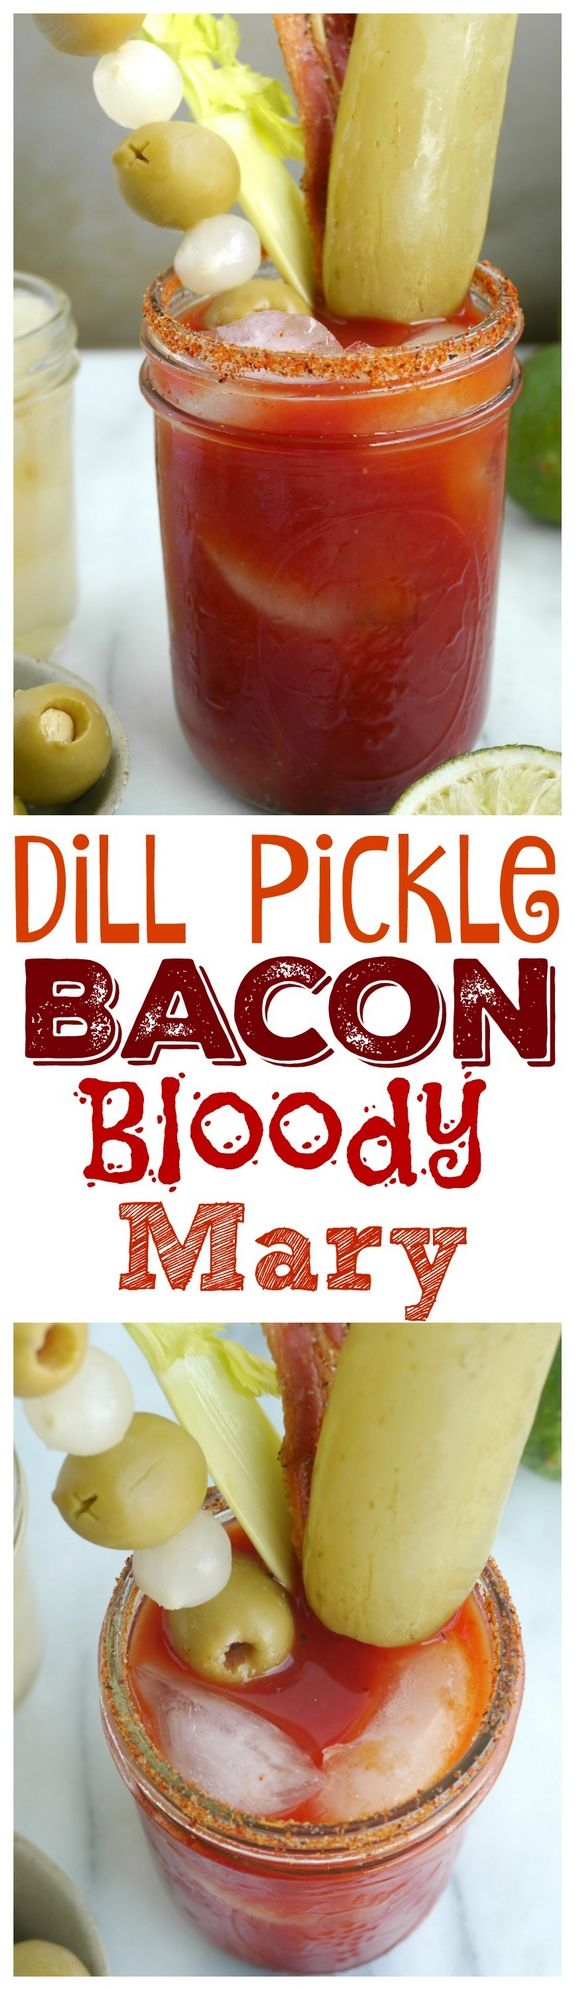 Dill Pickle Bacon Bloody Mary from NoblePig.com.